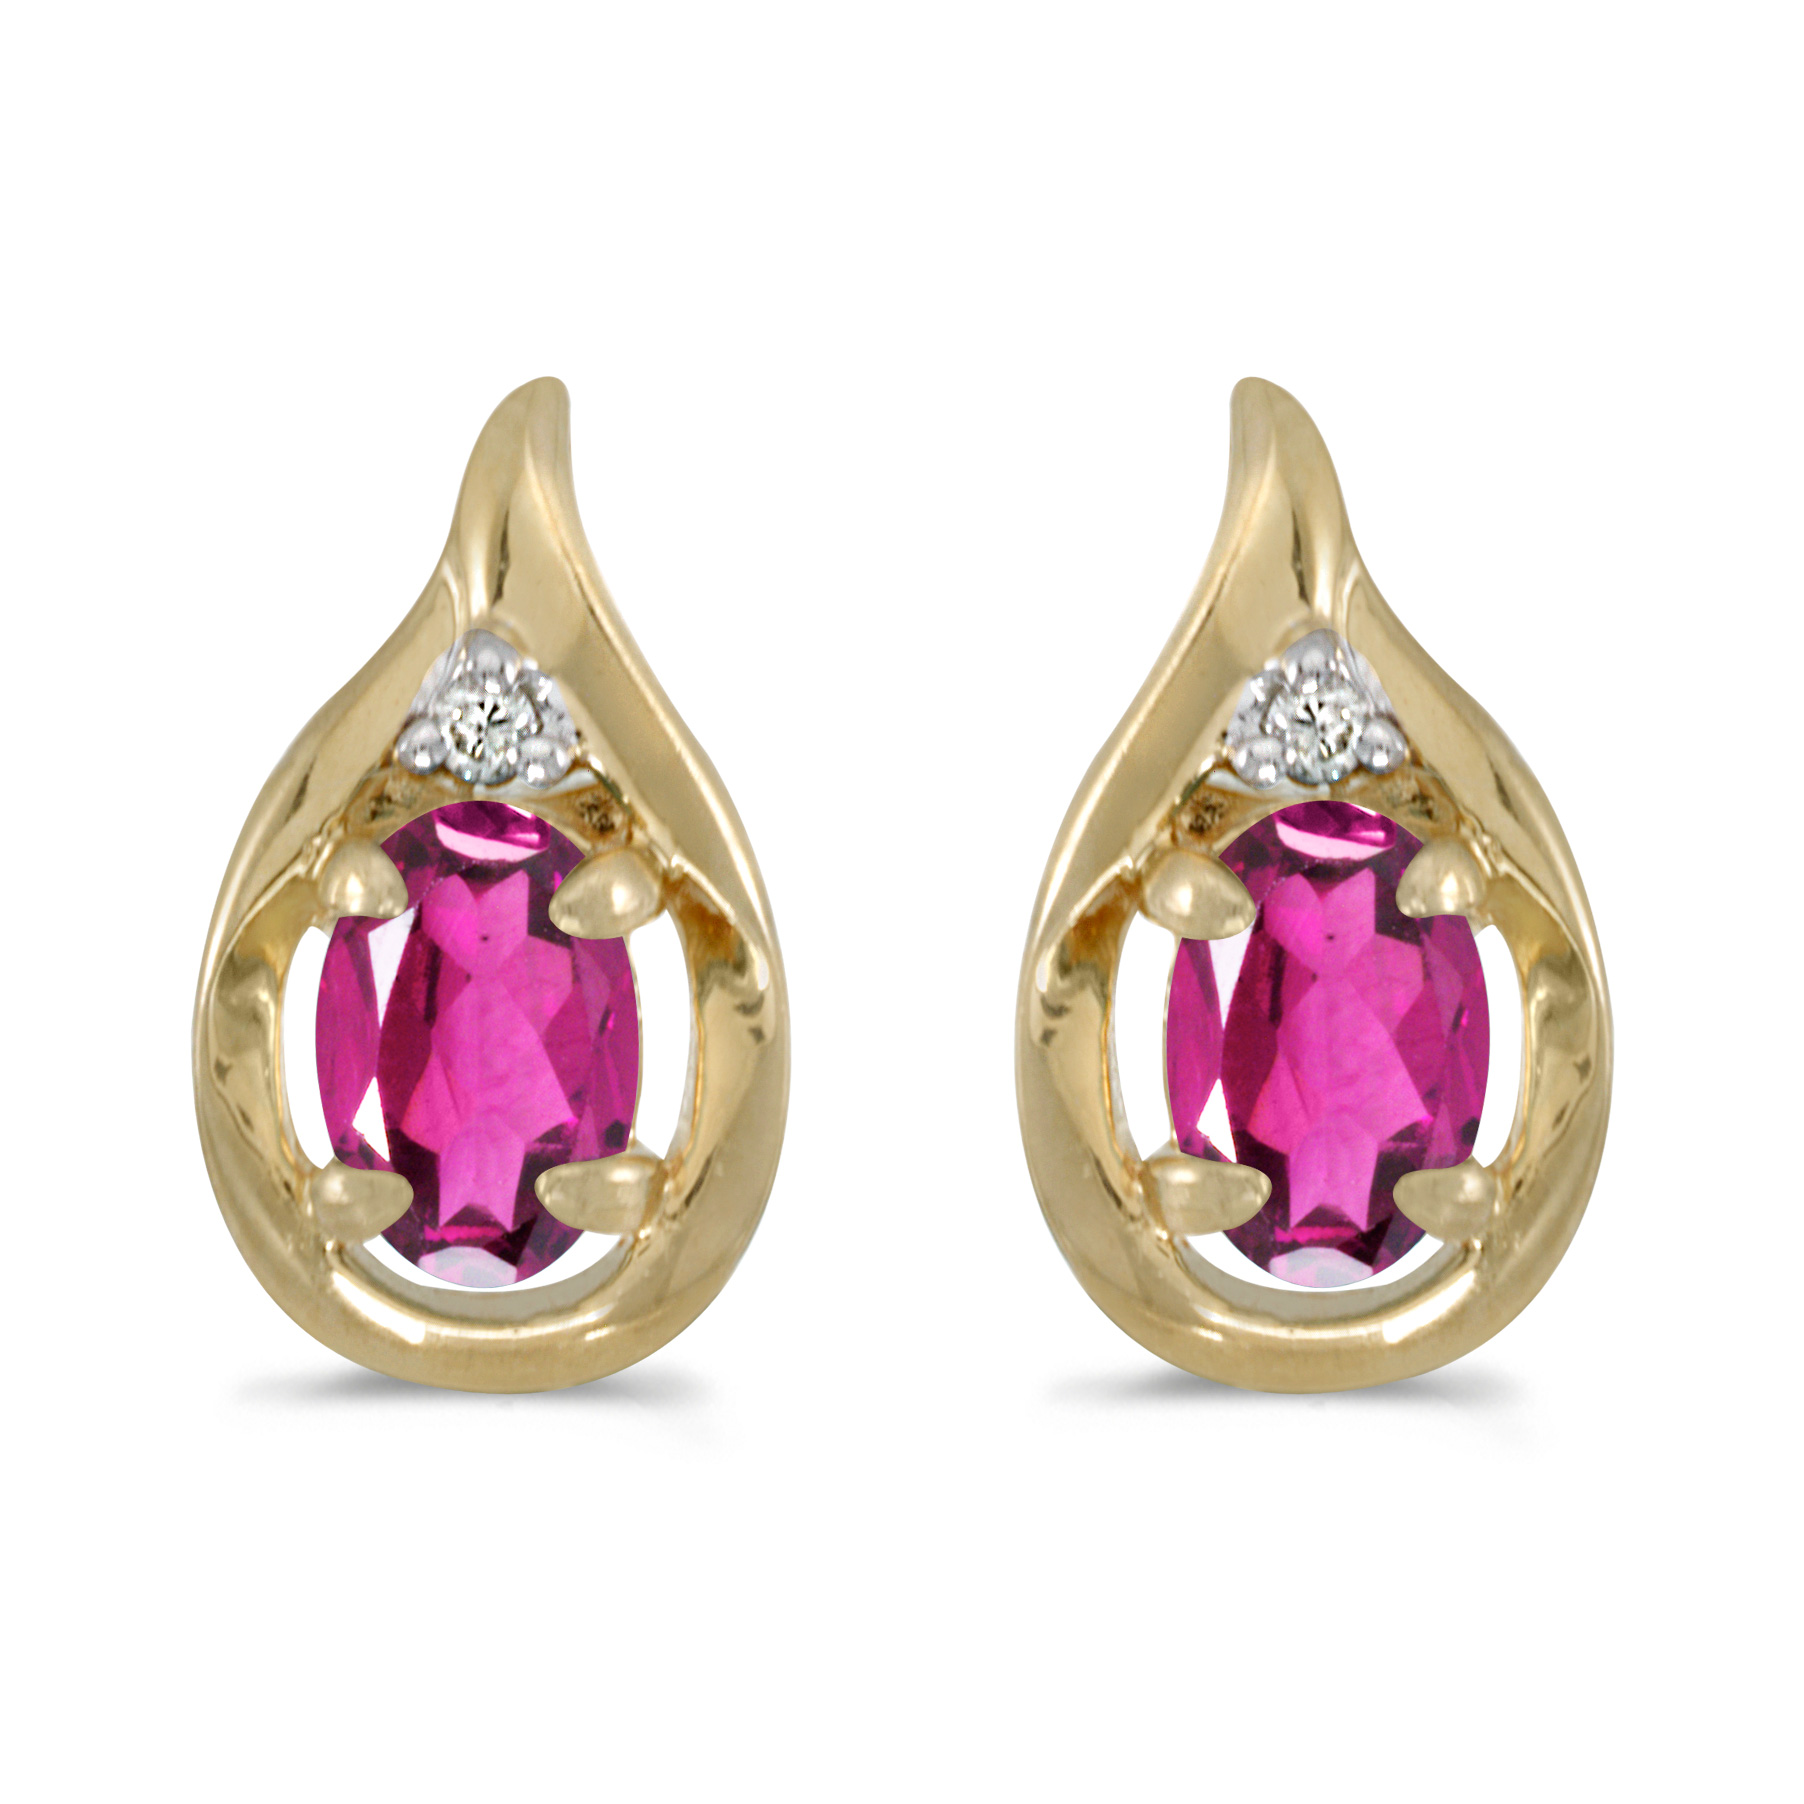 14k Yellow Gold Oval Pink Topaz And Diamond Earrings by LCD